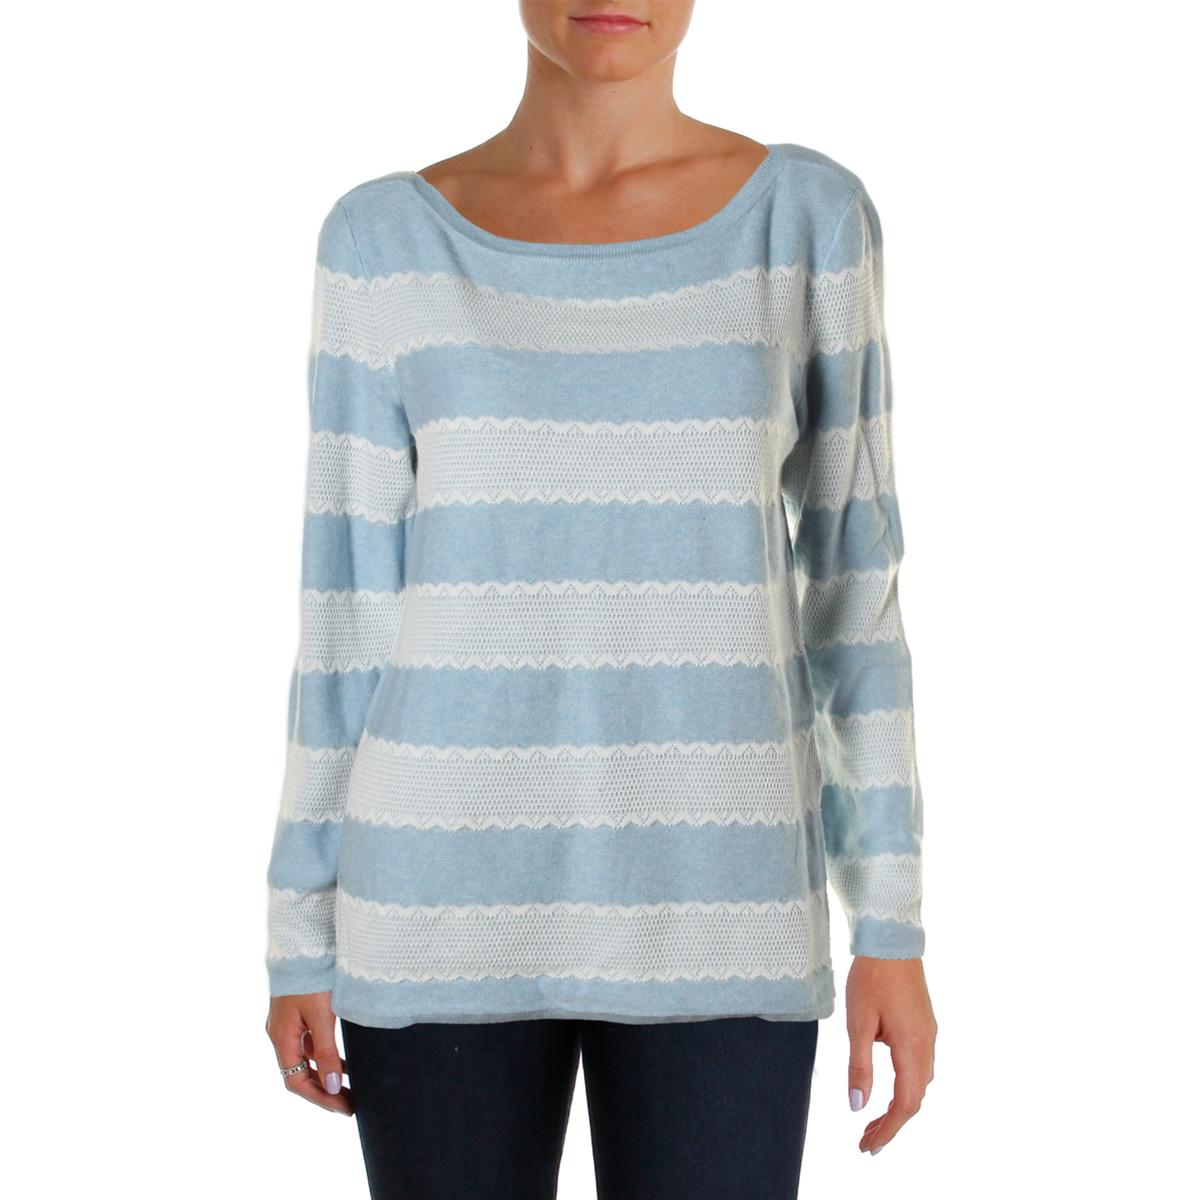 tommy hilfiger 2690 womens heathered lace trim boatneck pullover sweater bhfo ebay. Black Bedroom Furniture Sets. Home Design Ideas